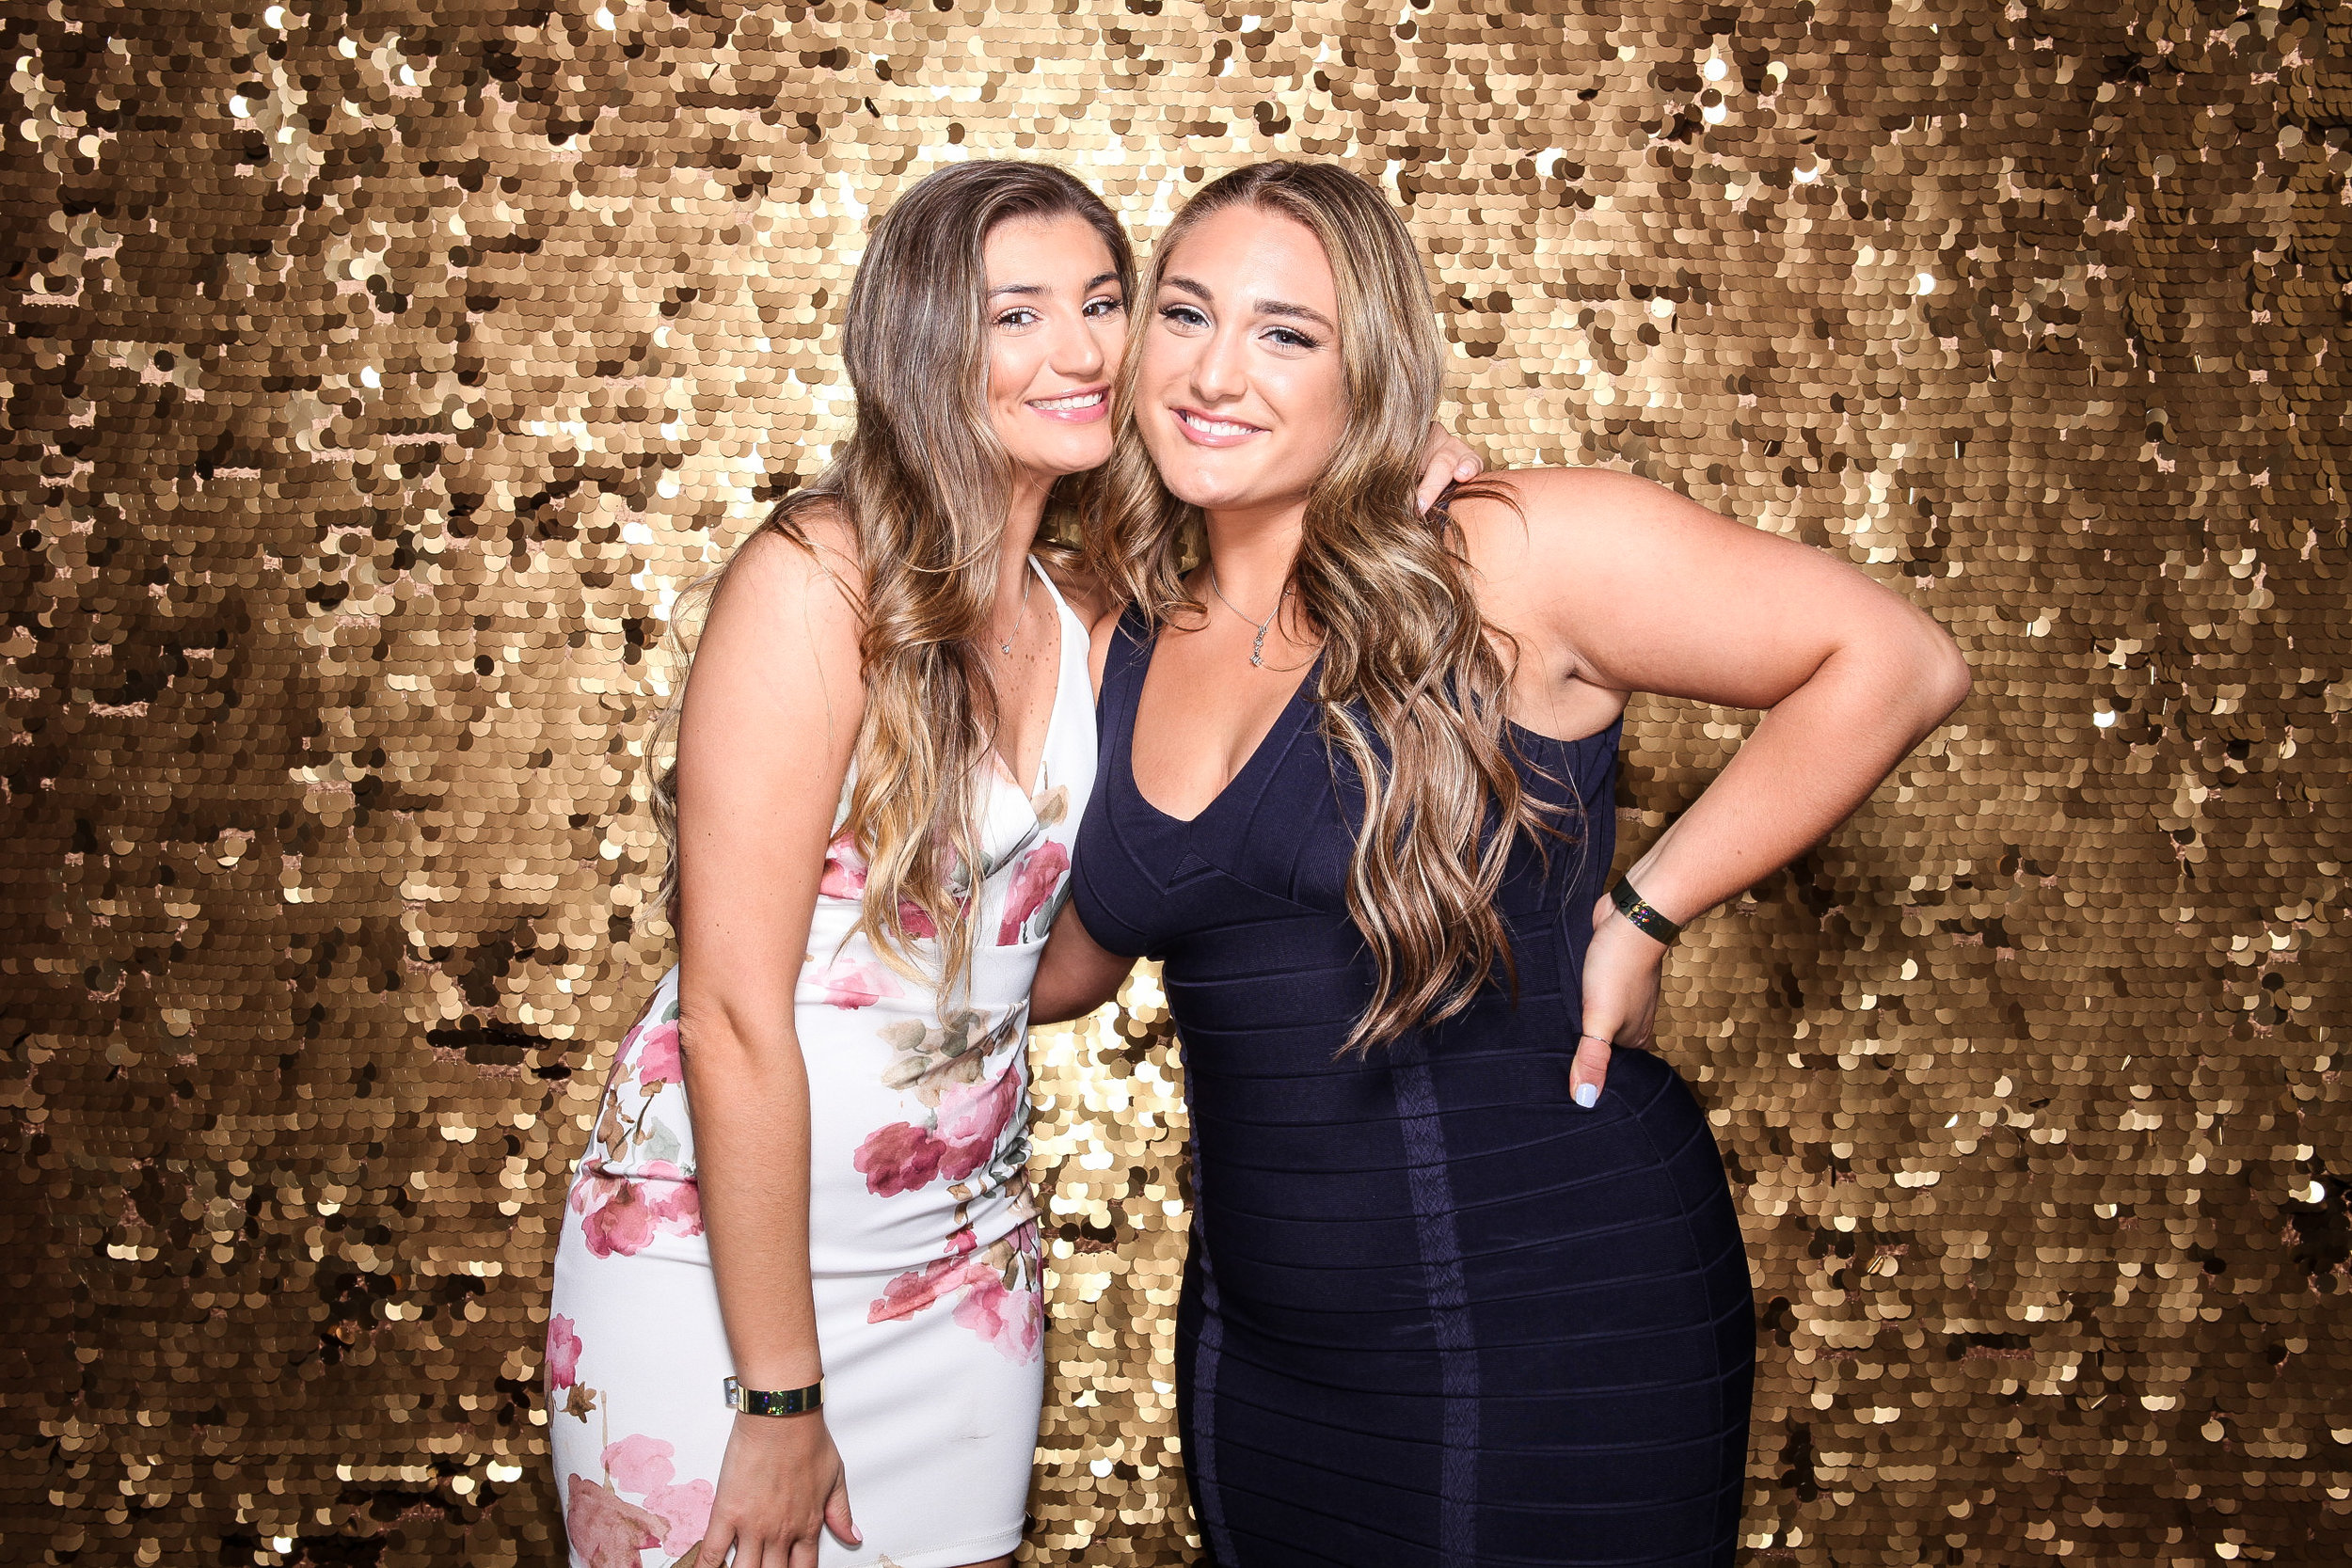 20190503_Adelphi_Senior_Formal-039.jpg